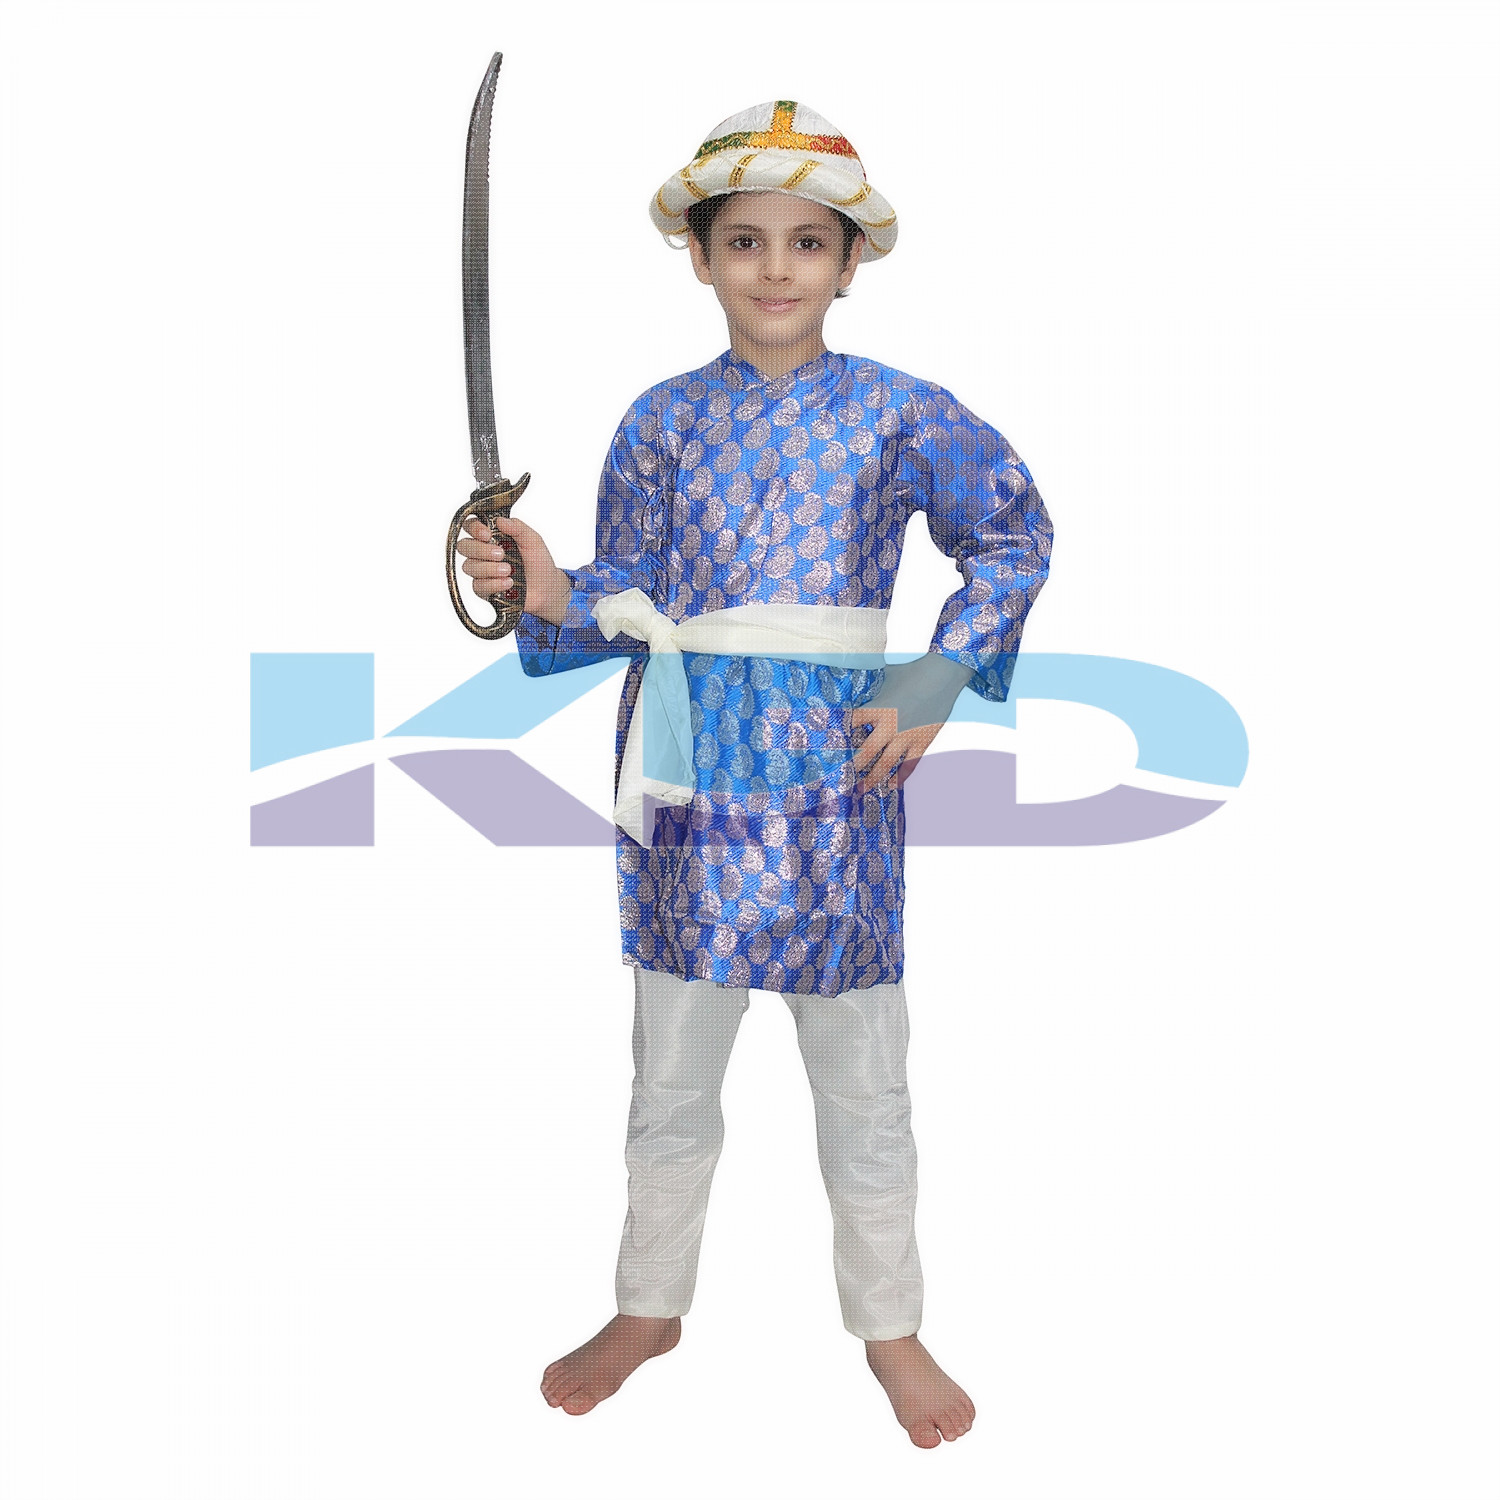 Tipu Sultan Blue Costume For Kids,Indian Historical Character Costume For School Annual function/Theme Party/Stage Shows/Competition/Birthday Party Dress